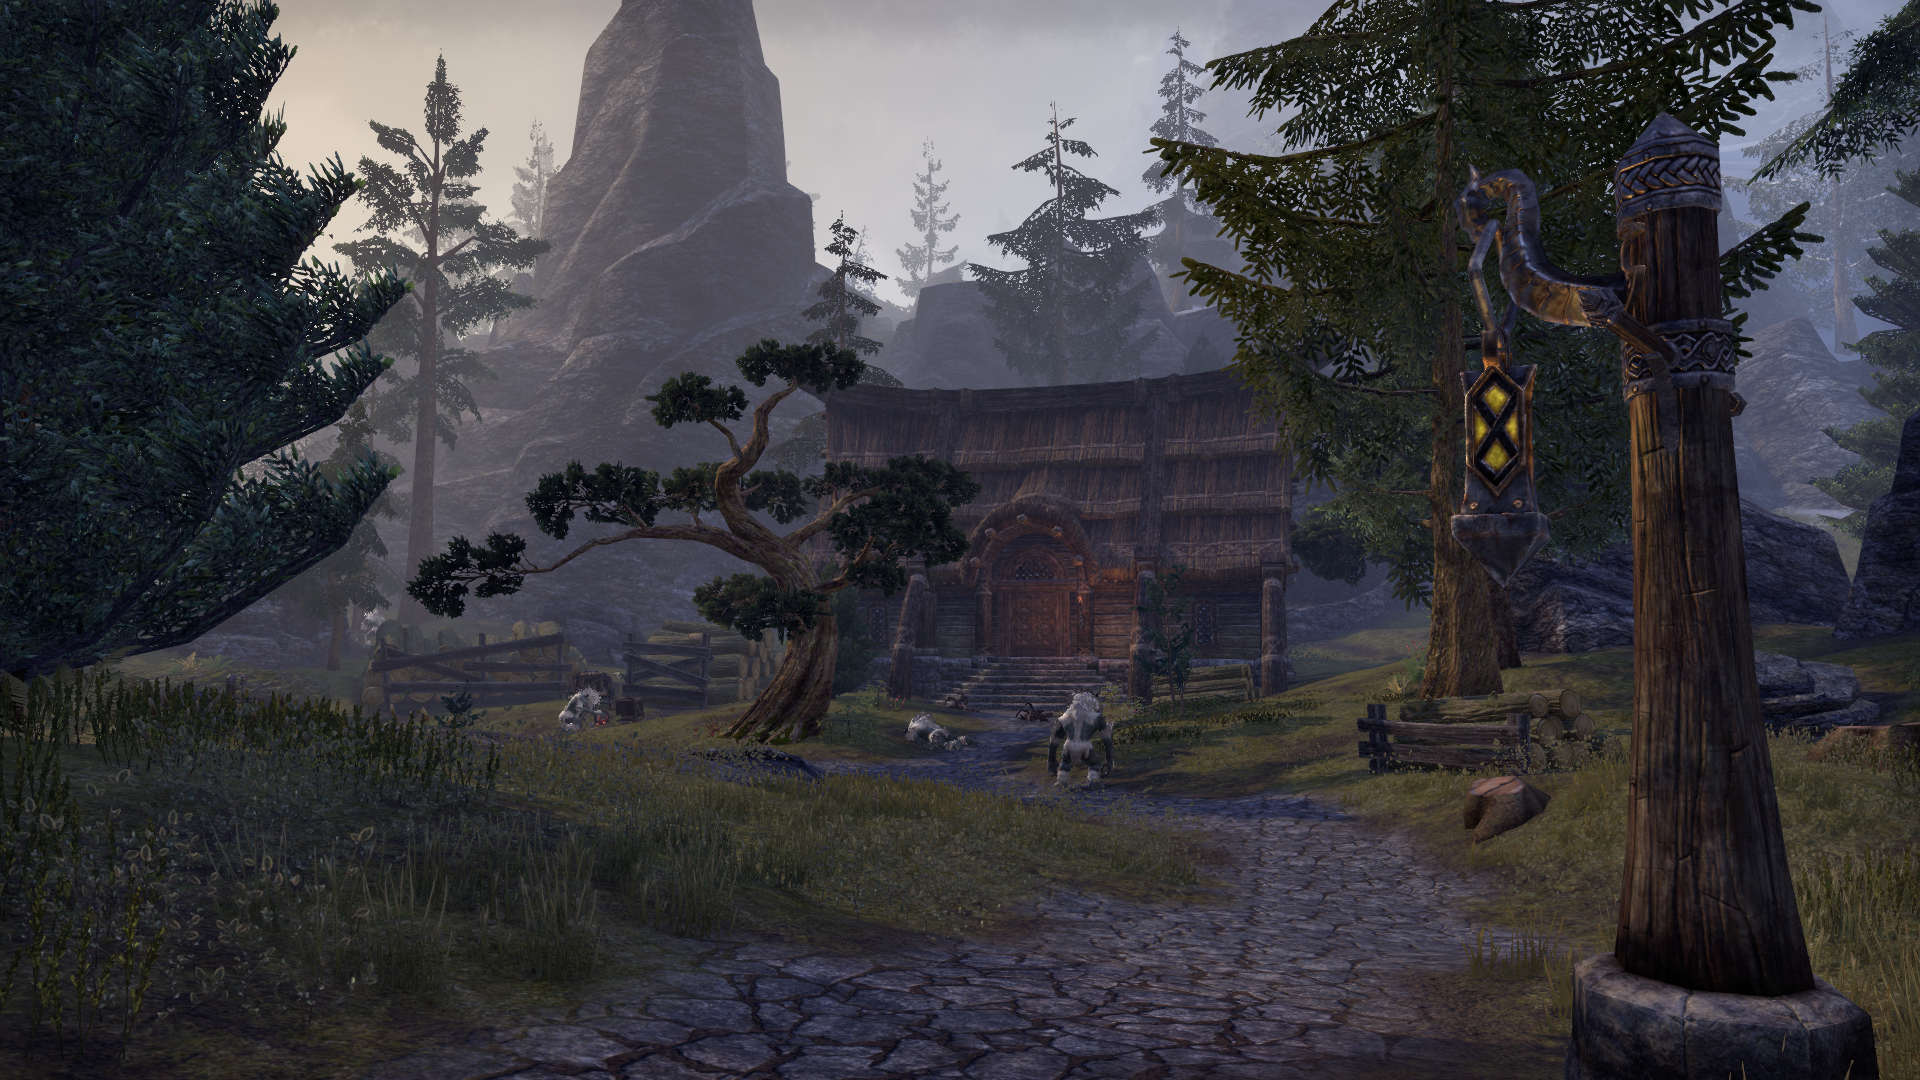 Thulvald's Logging Camp